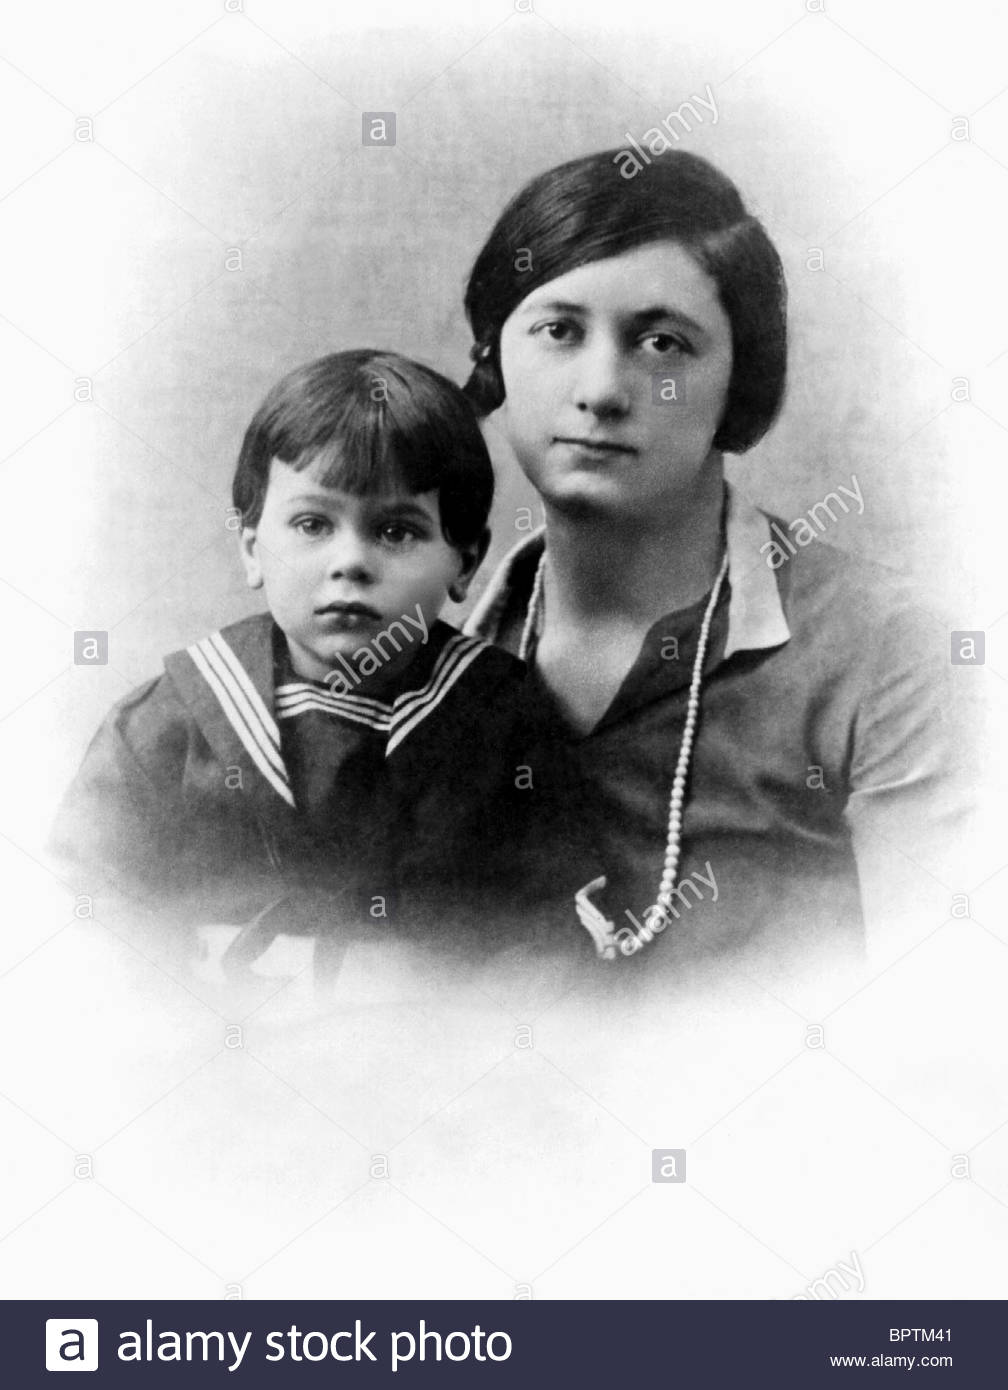 Tony Curtis childhood photo one at alamy.com